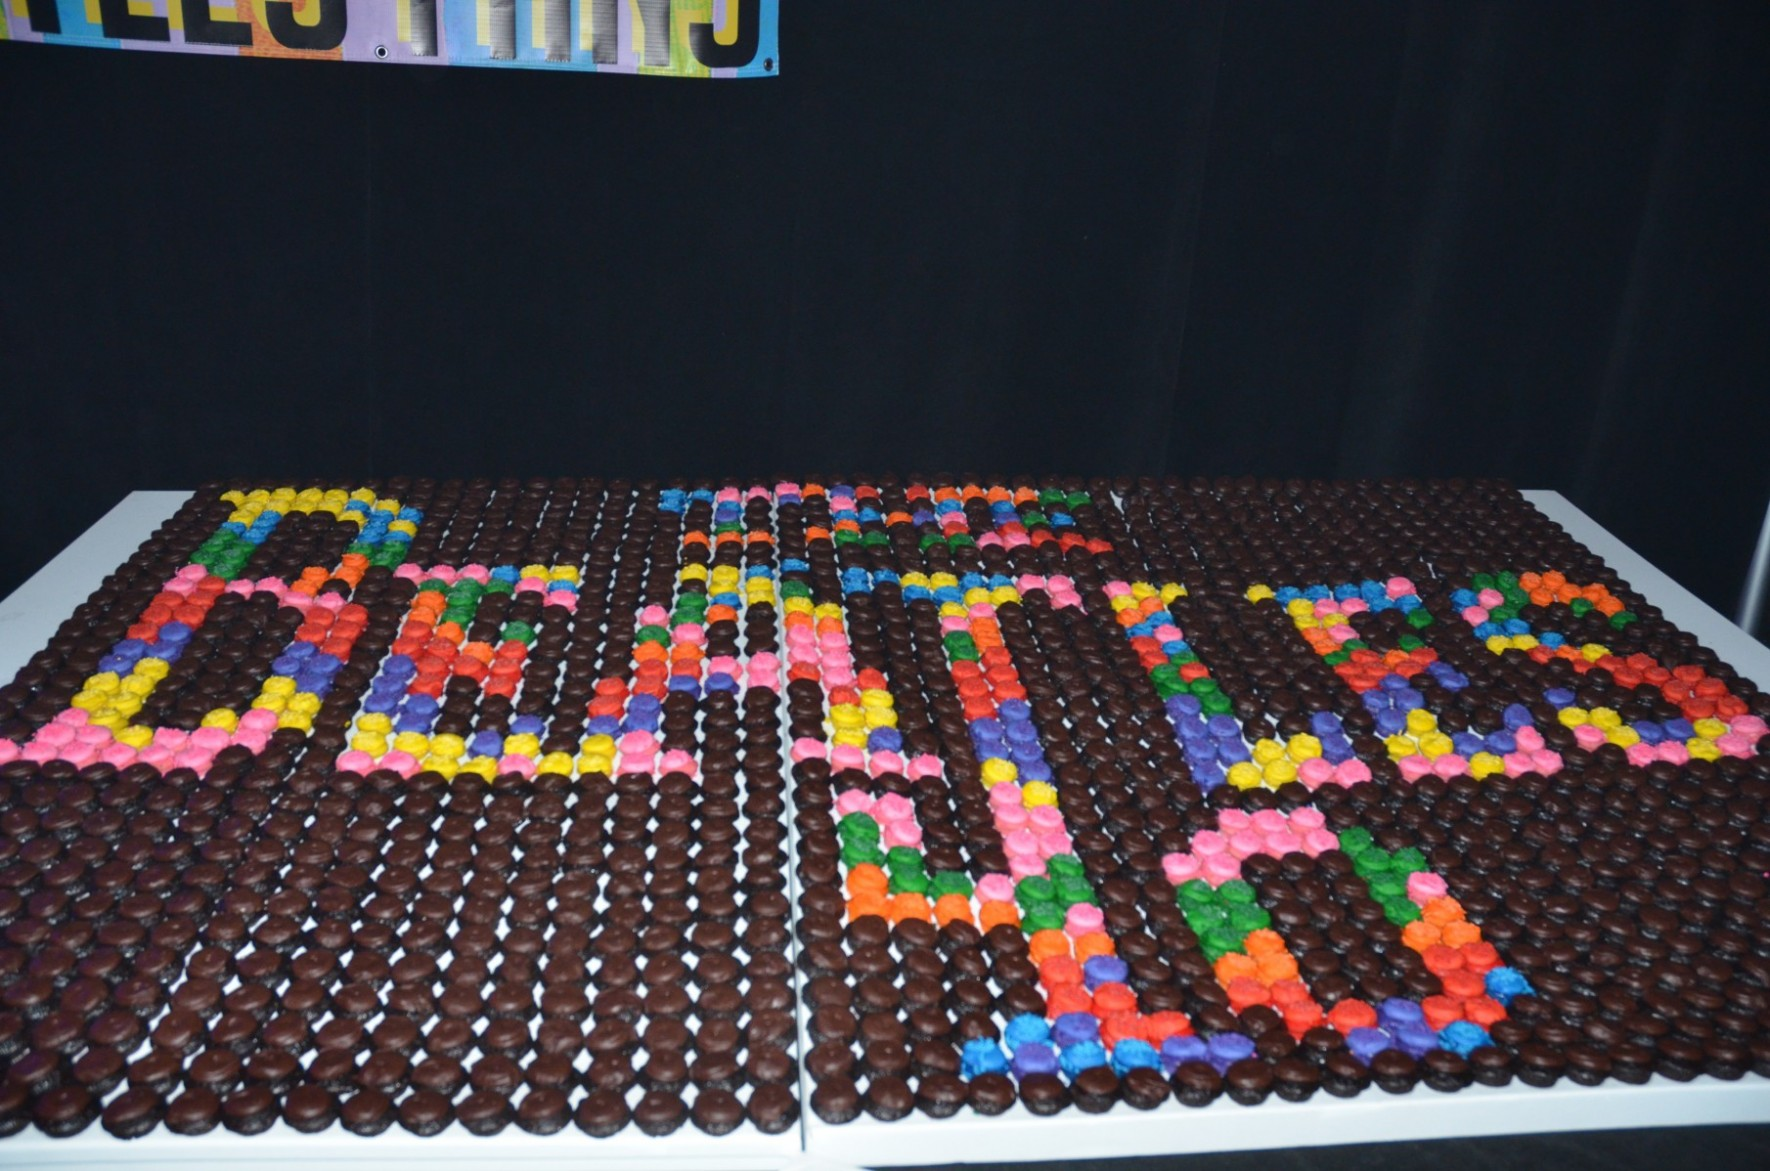 To recognize the 40th anniversary of the Fest, Baked By Melissa provided an amazing Beatles mosaic made up of over 2,000 cupcakes. Fest attendees took a piece, but not too much...